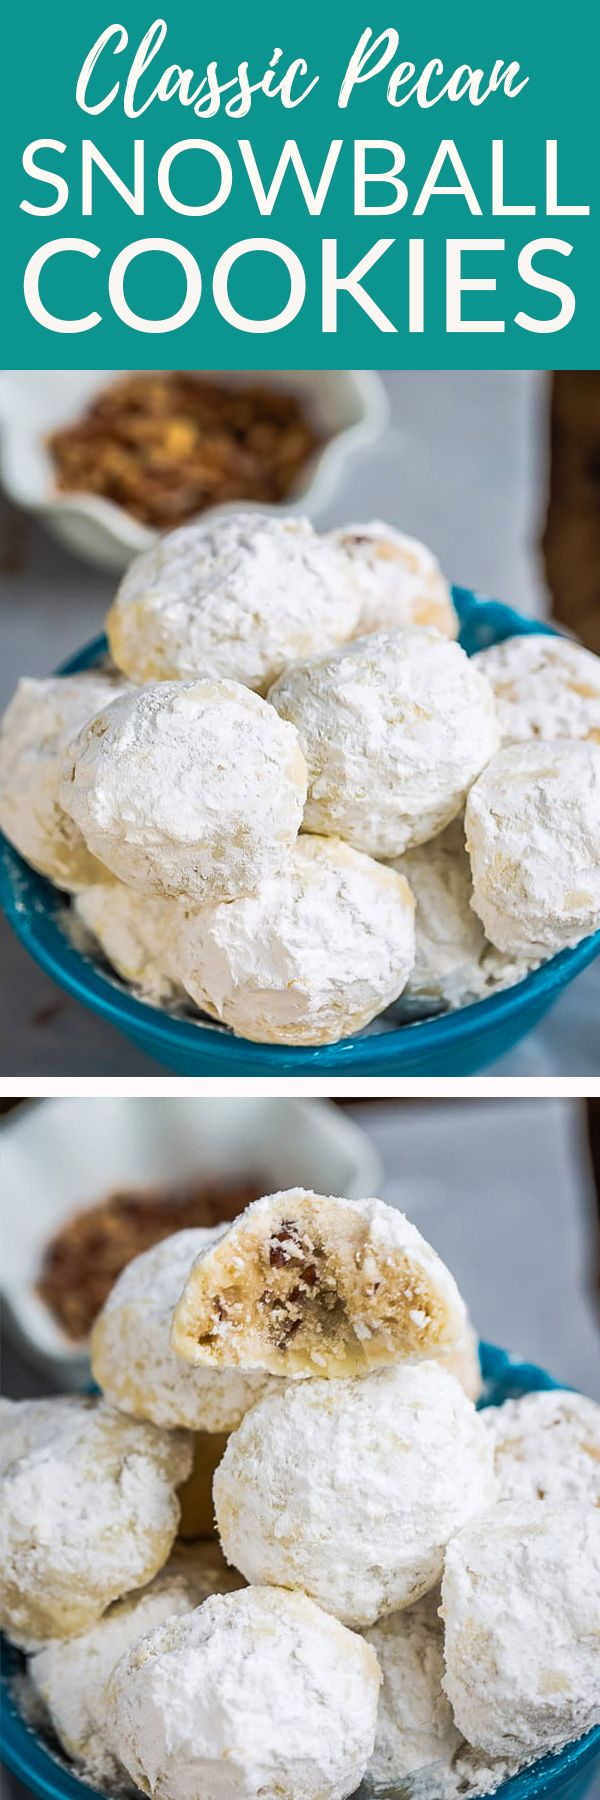 Classic Pecan Snowball Cookies | Posted By: DebbieNet.com